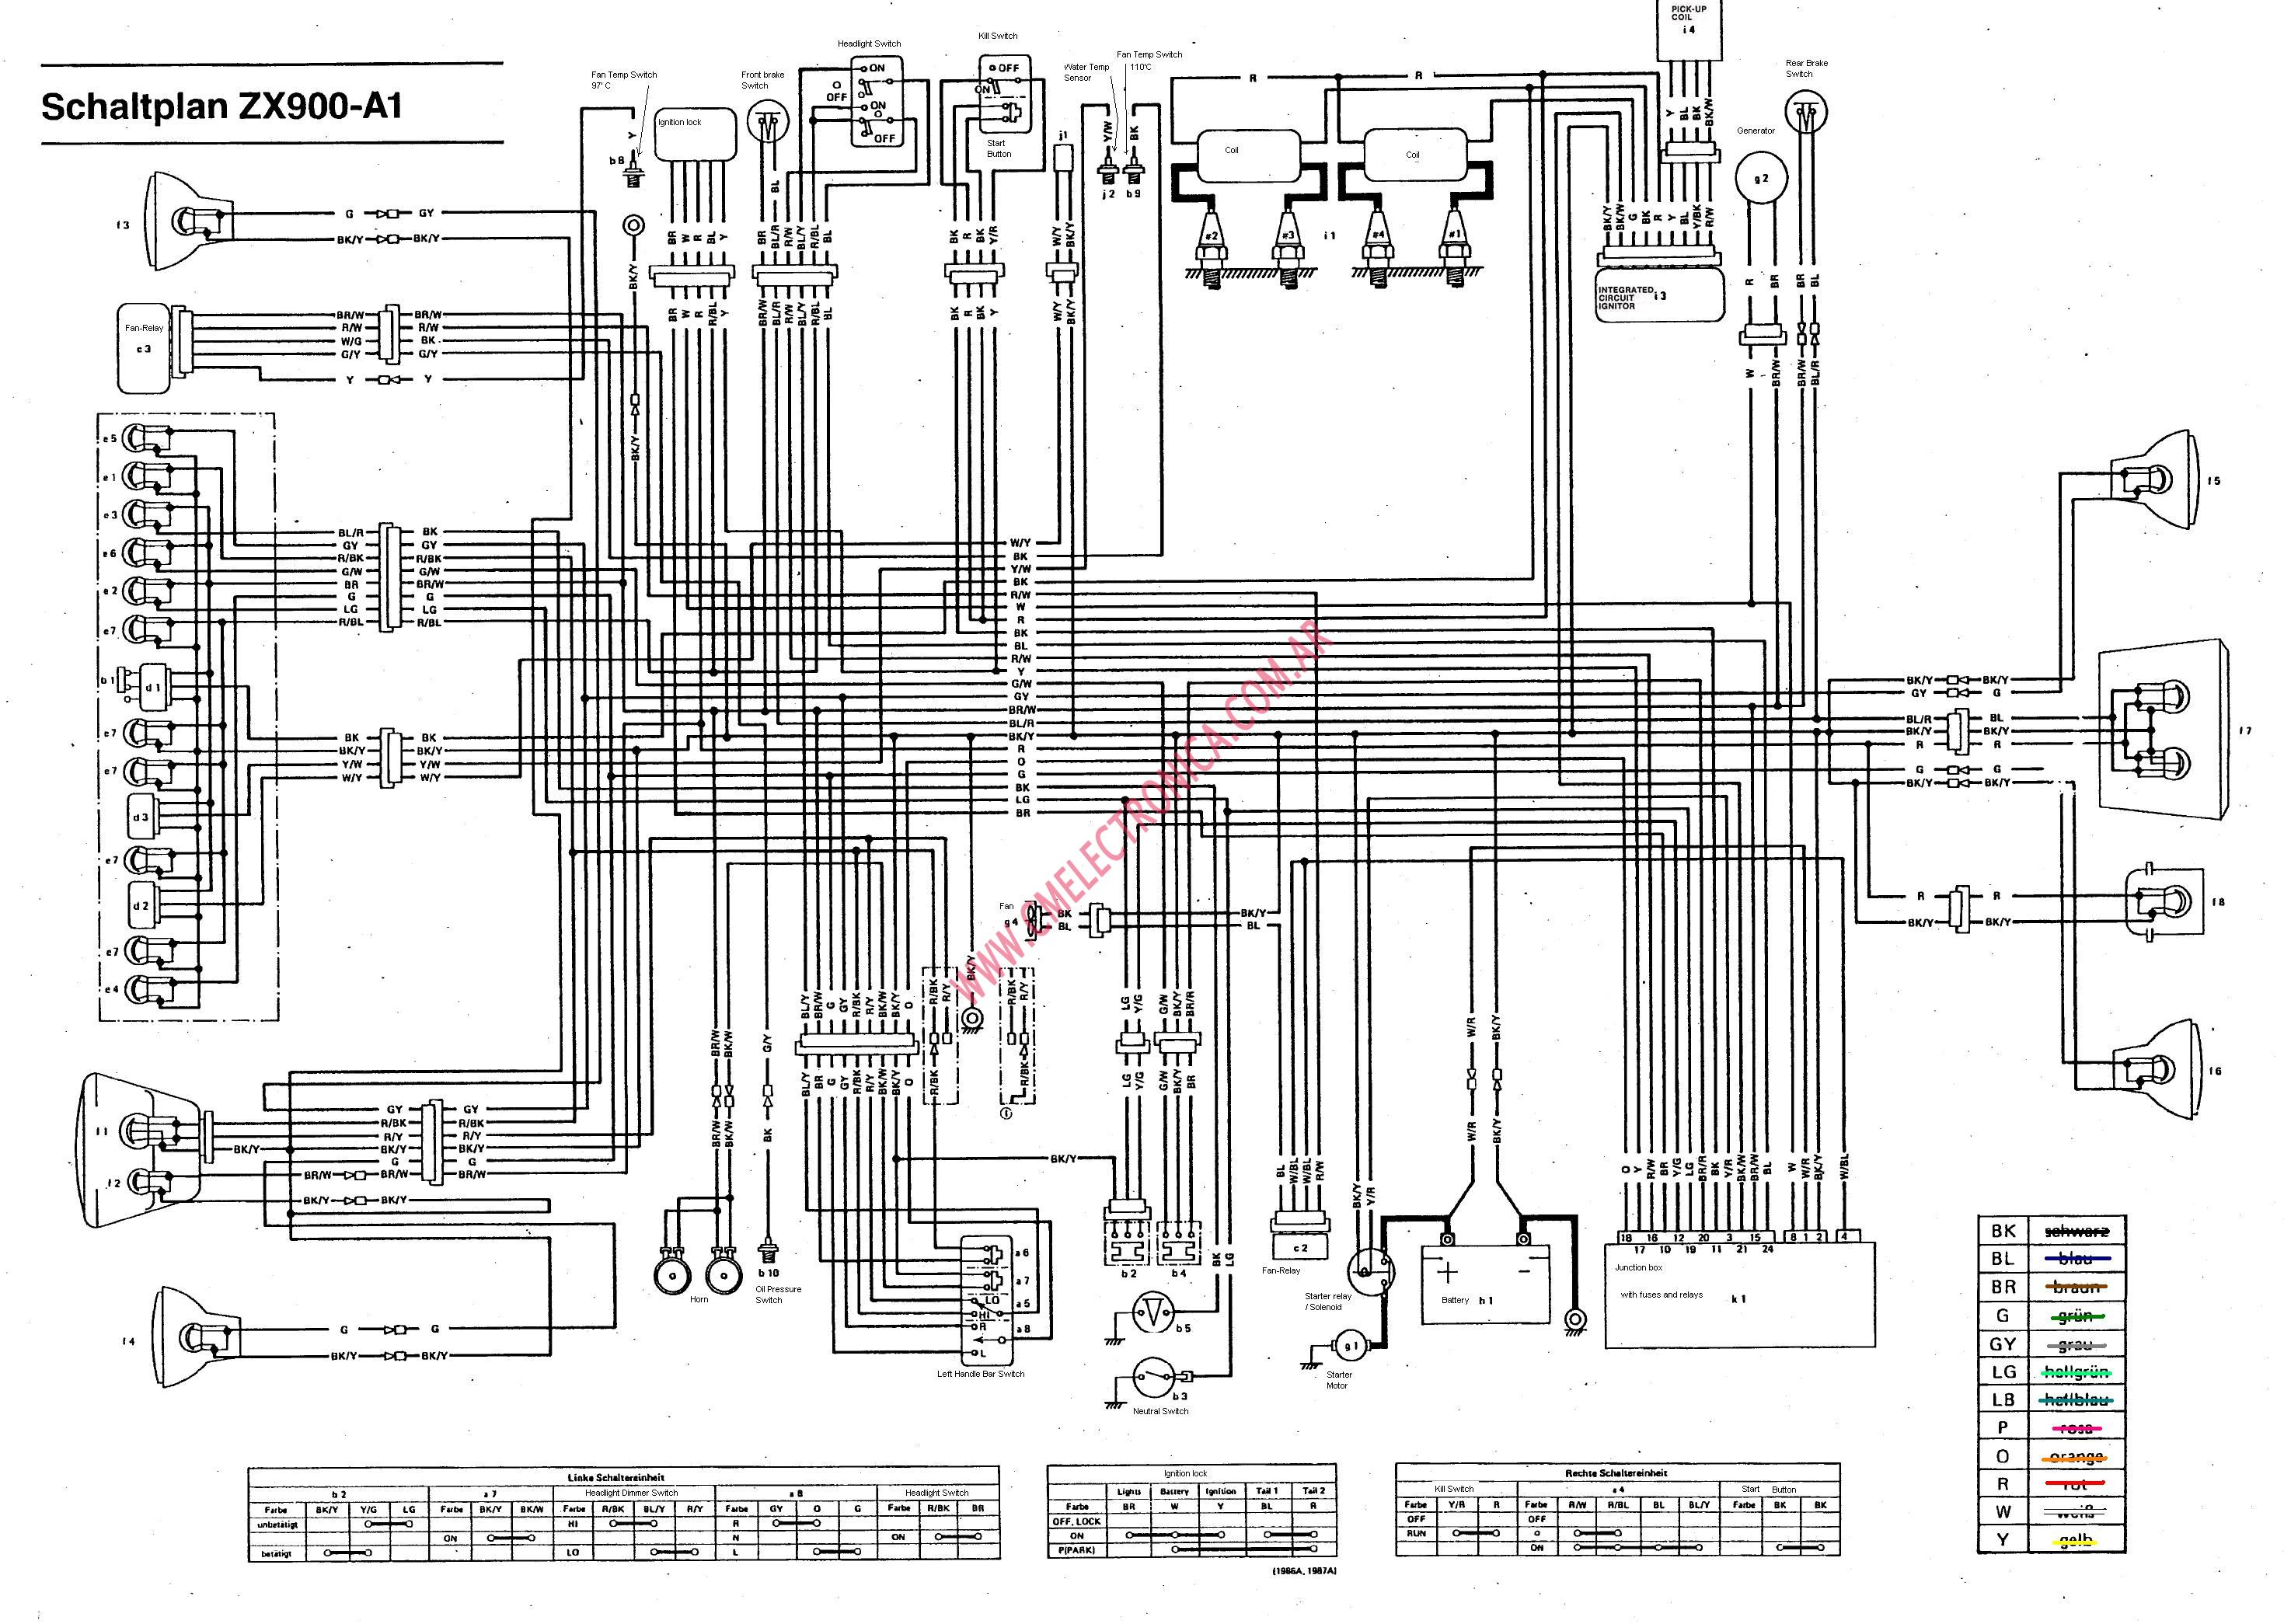 kawasaki gpz900_zx900 wiring diagrams 2005 kawaski ninja 500 on wiring download wirning  at reclaimingppi.co